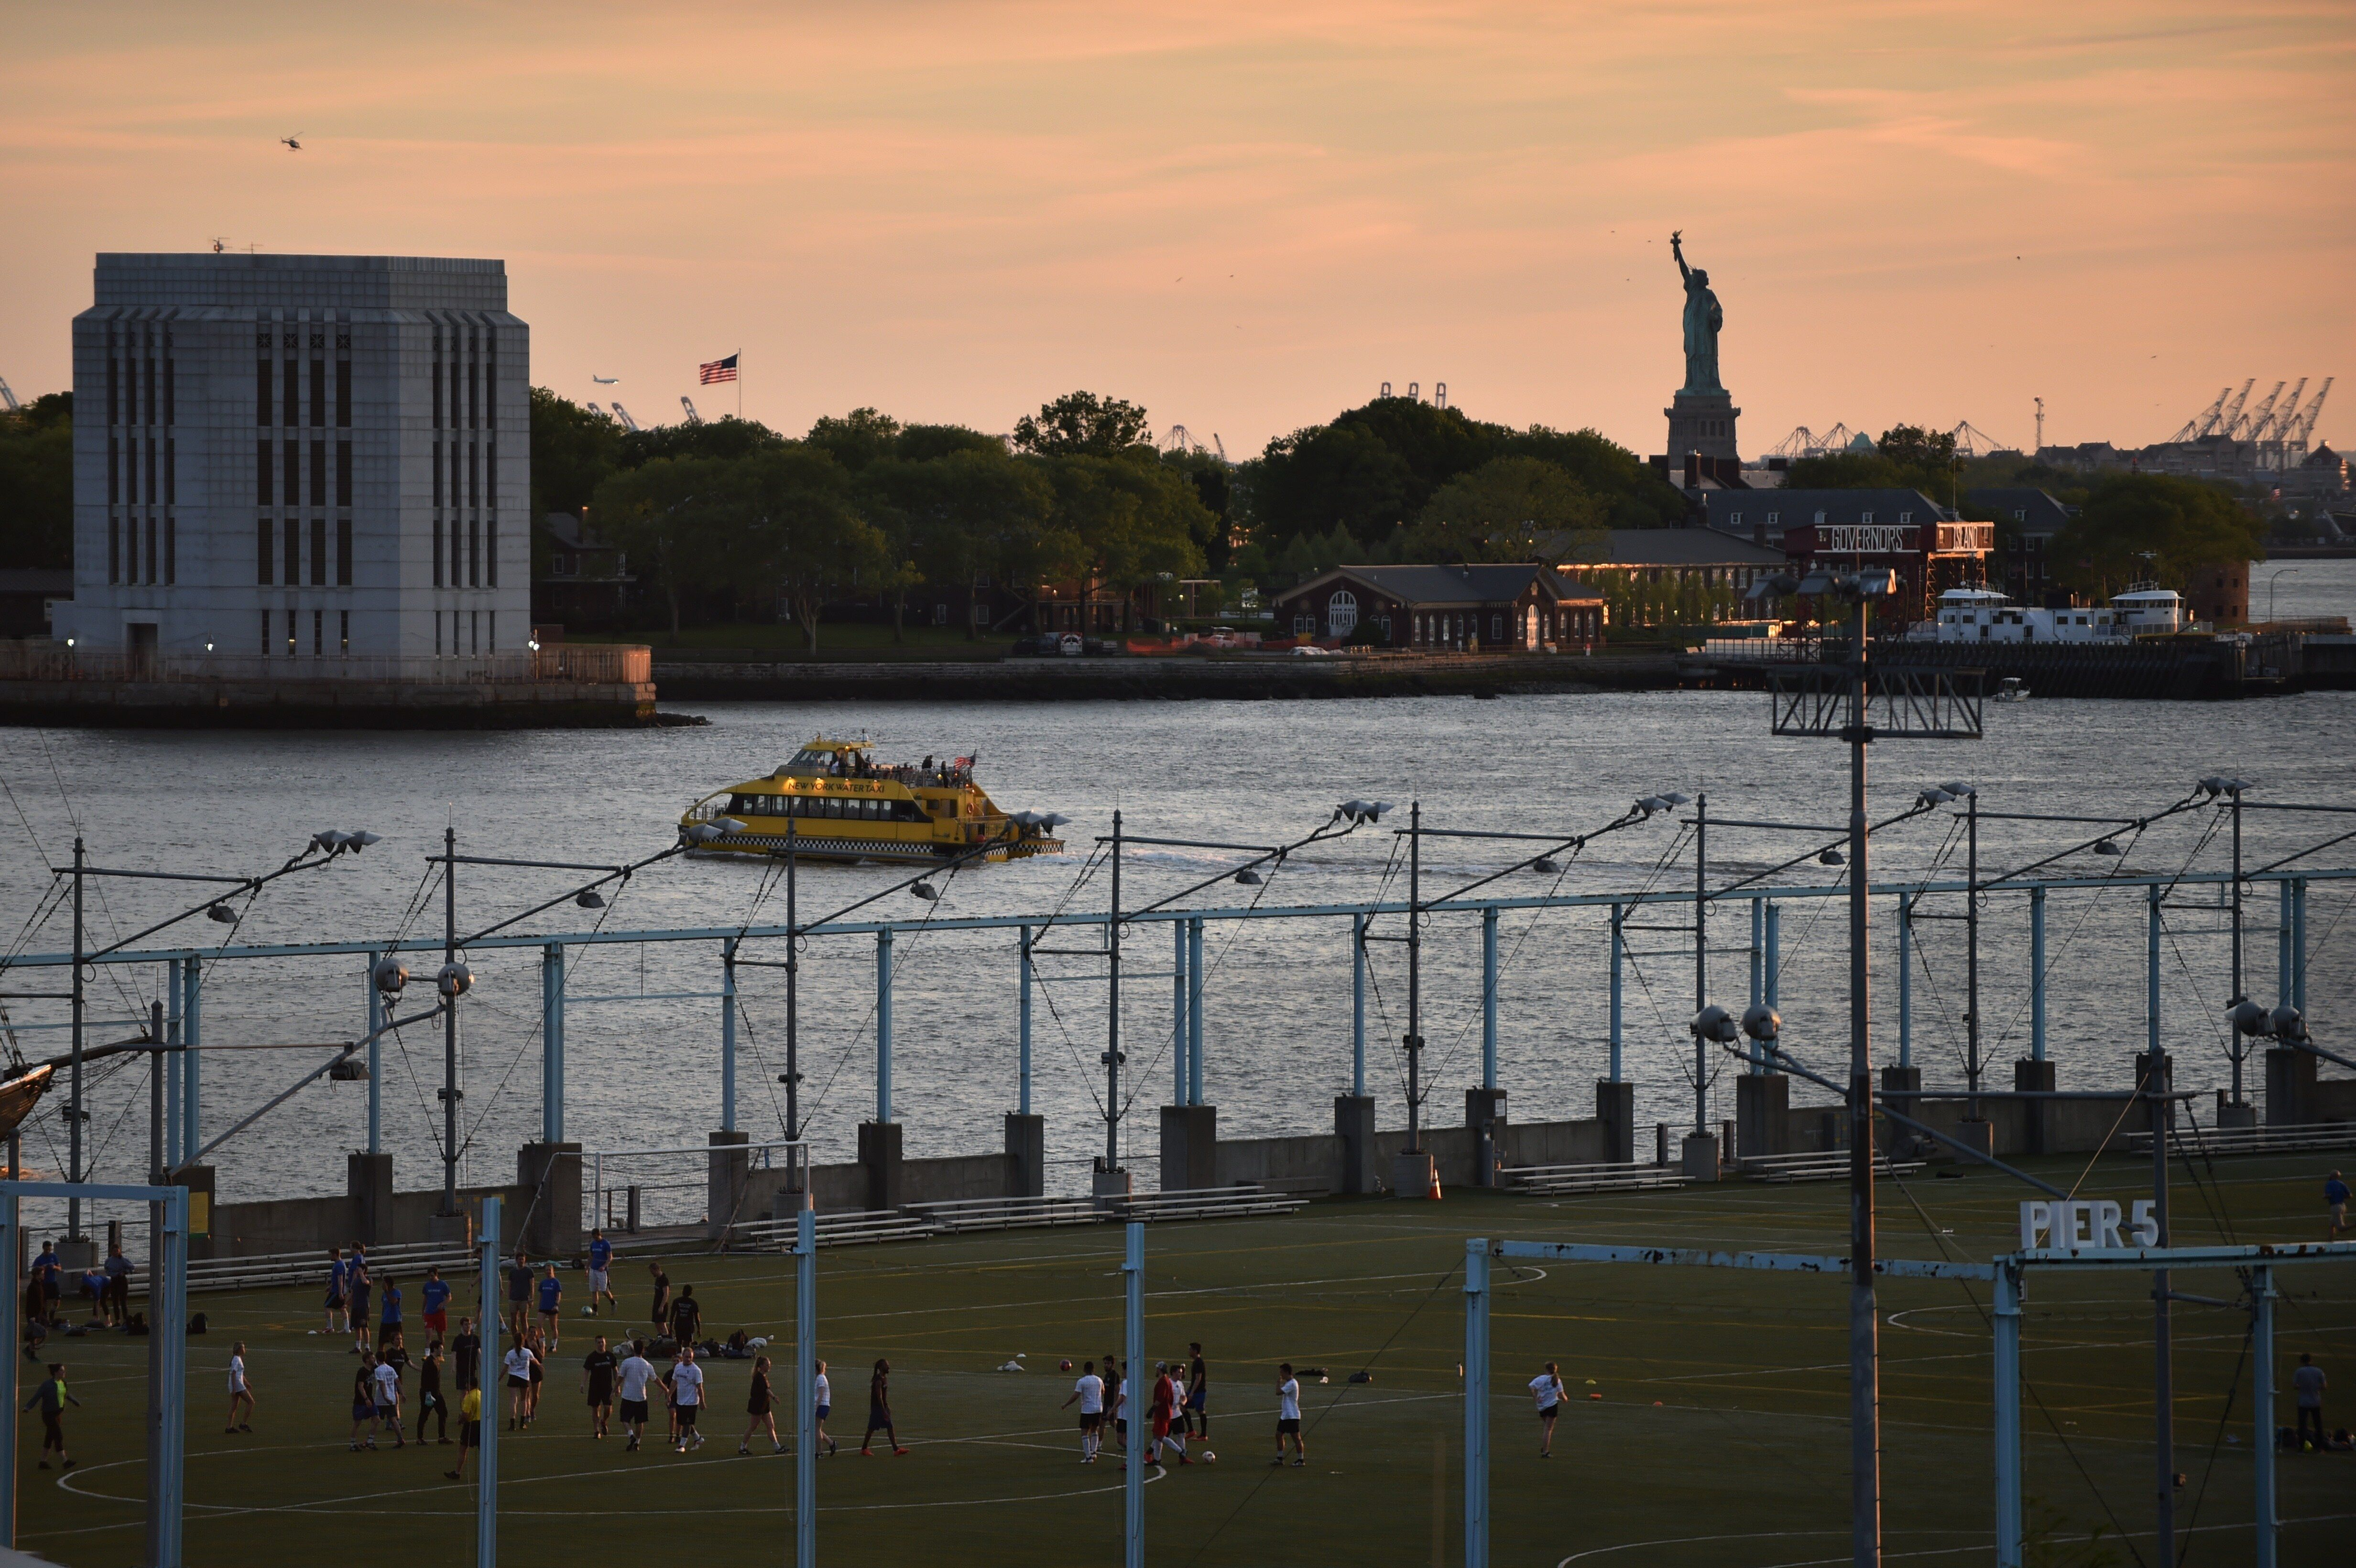 A planned statue of Ginsburg may get a view of the Statue of Liberty like this soccer field in Brooklyn Bridge Park enjoys.